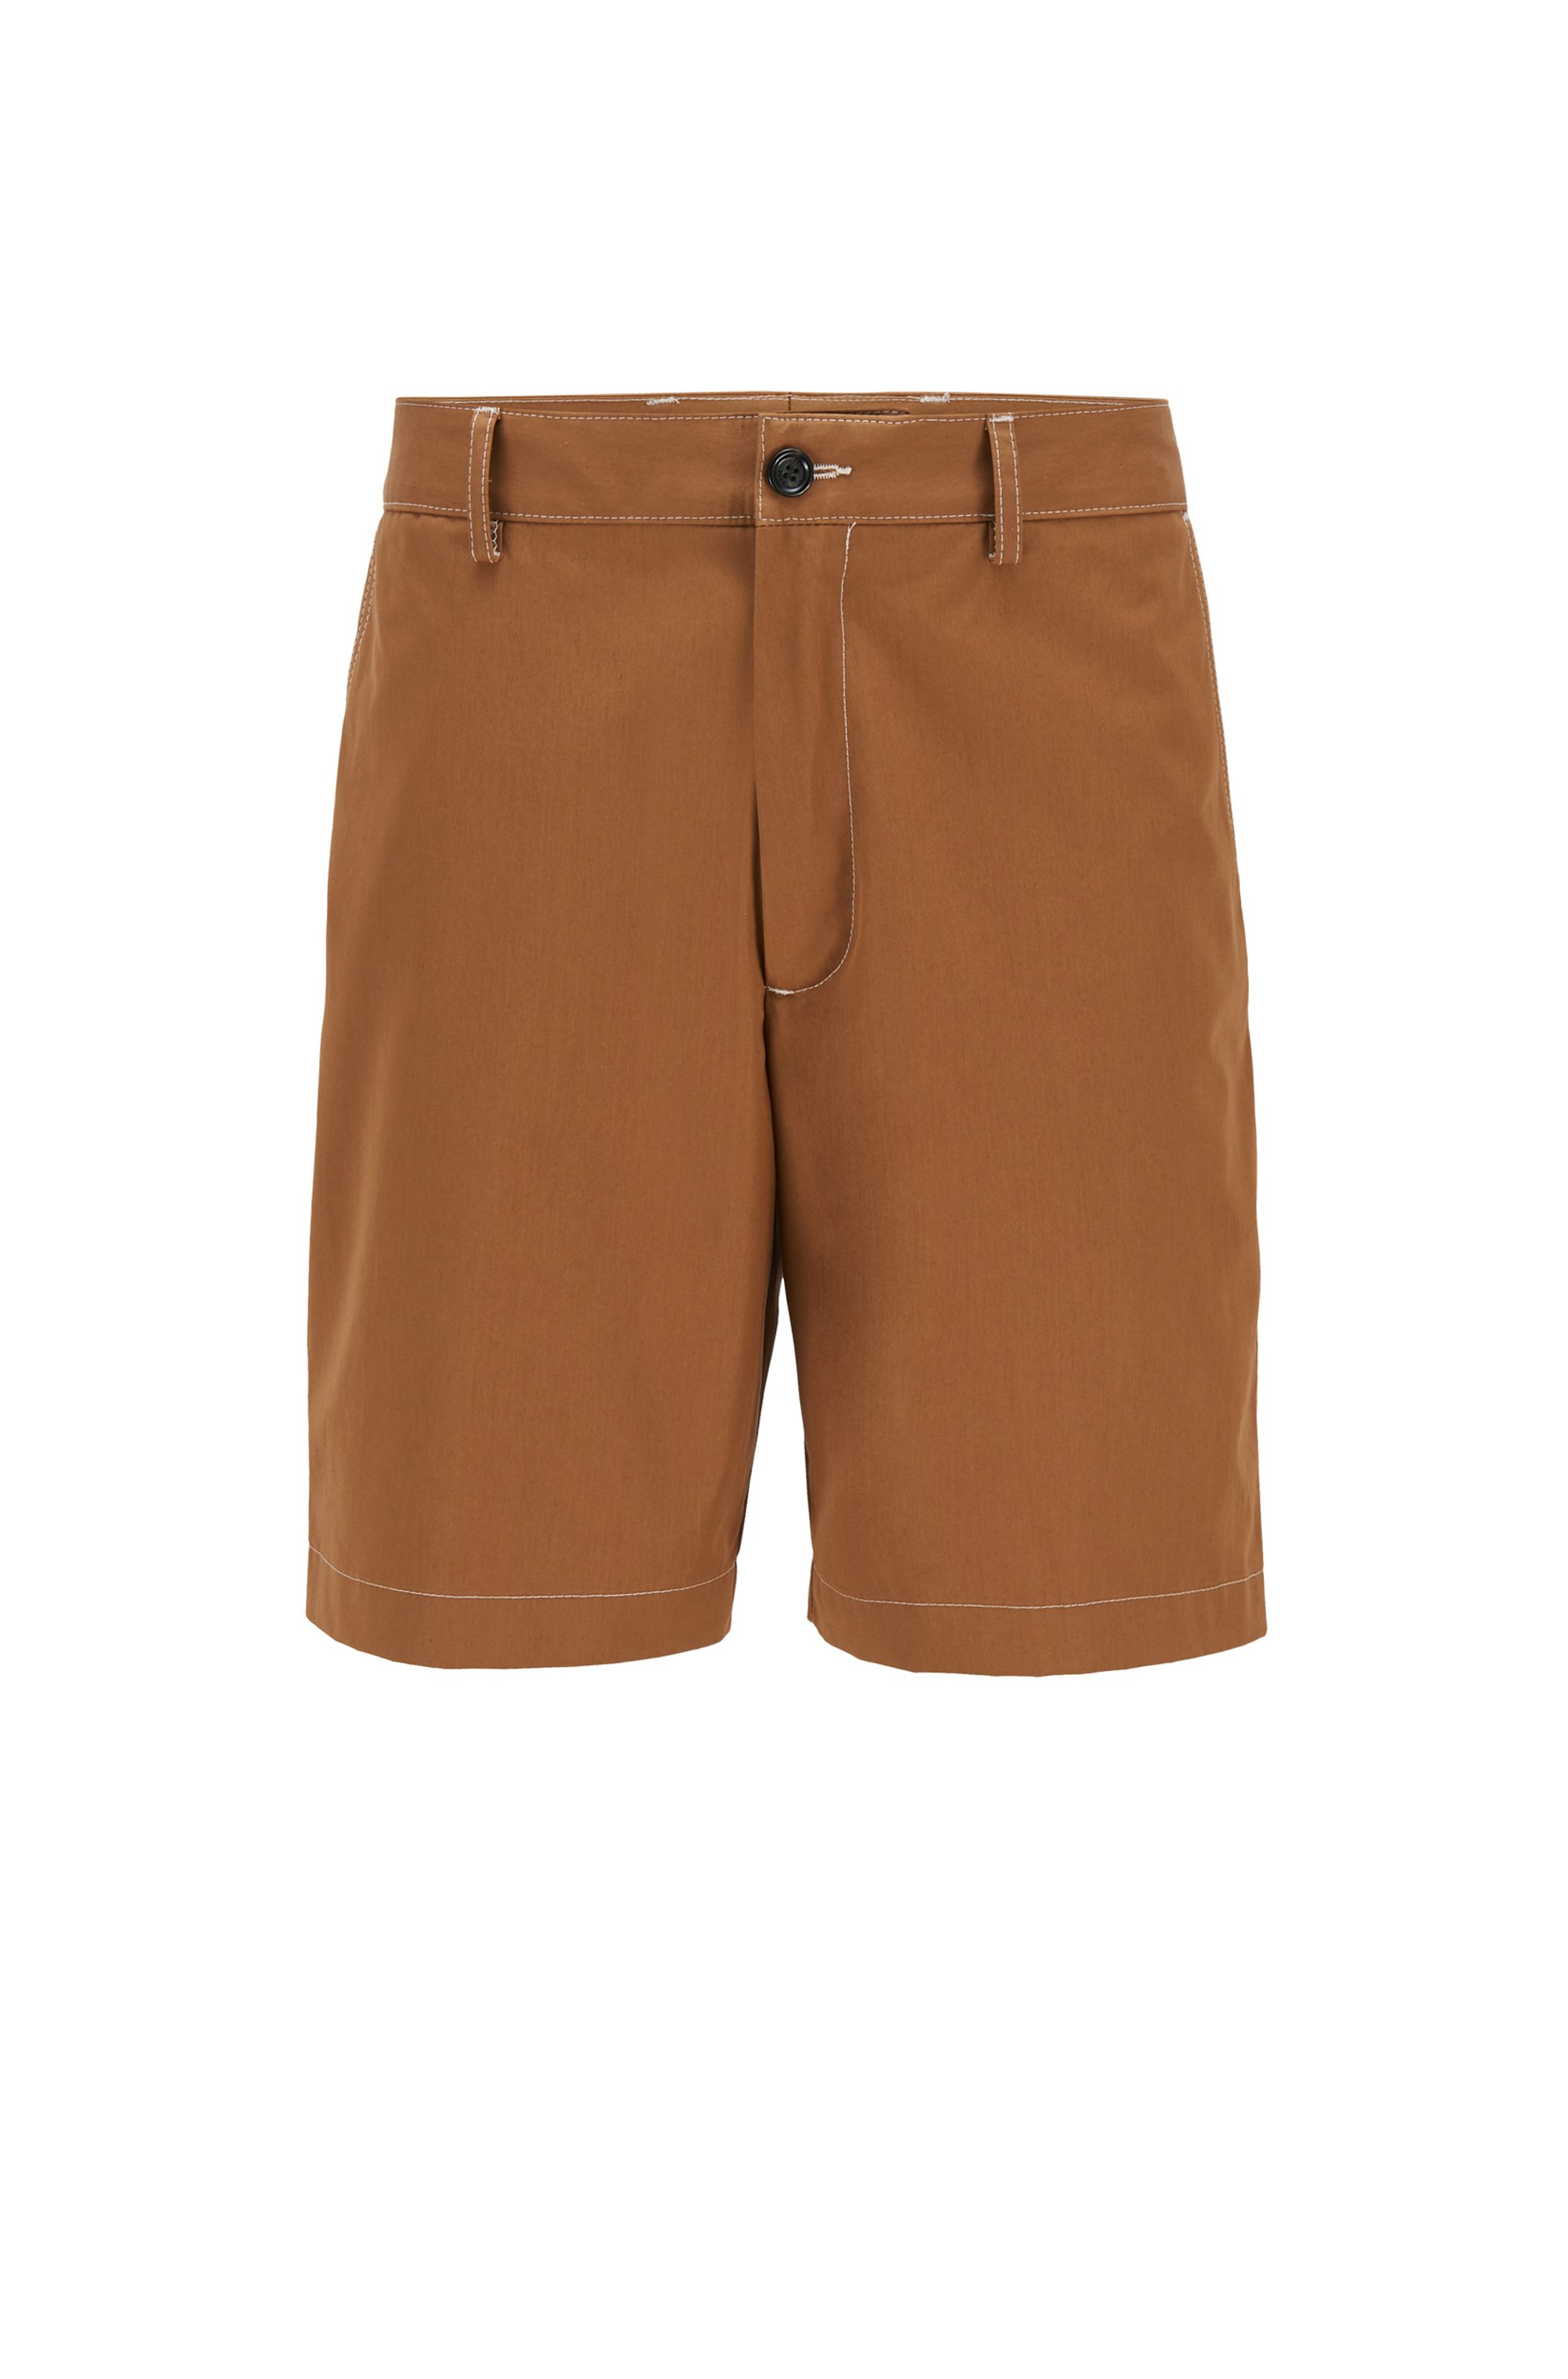 Short Regular Fit en popeline de coton lisse, Beige